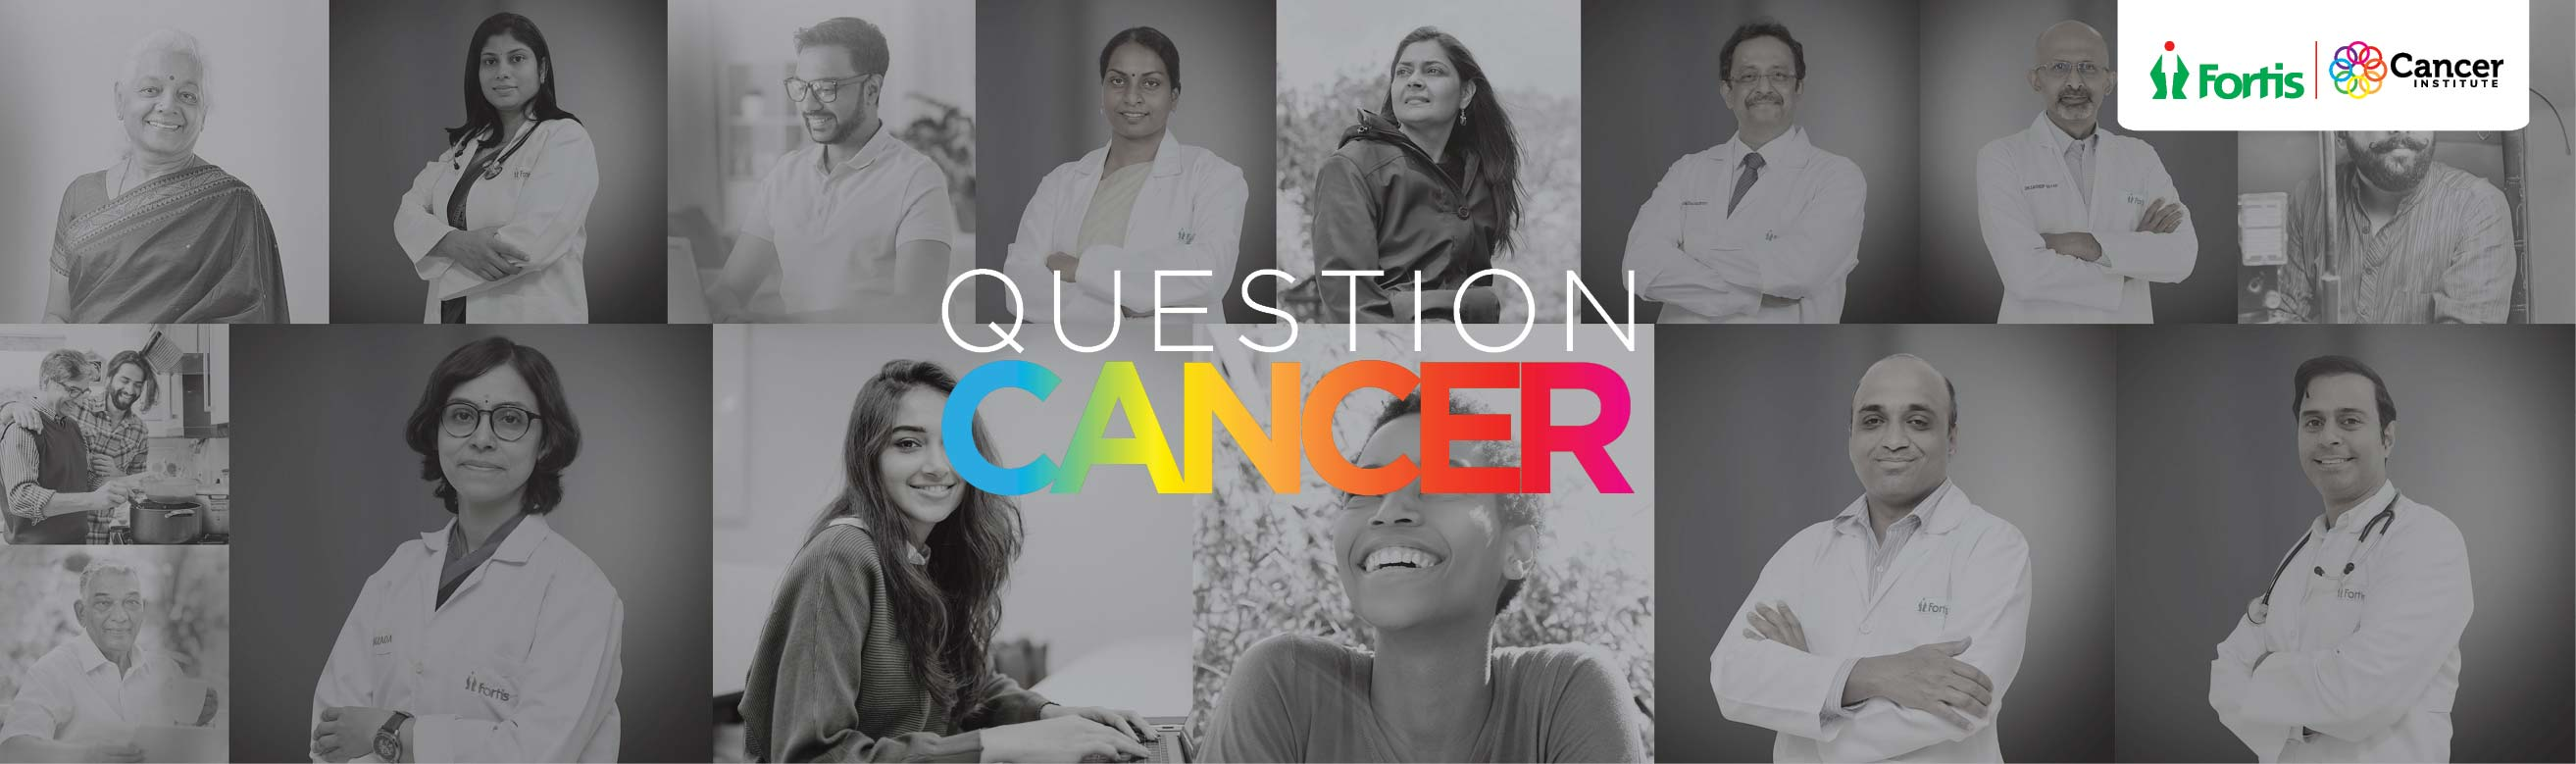 Oncology at Fortis Hospitals Bangalore   Best Cancer Institute in Bangalore - Question Cancer